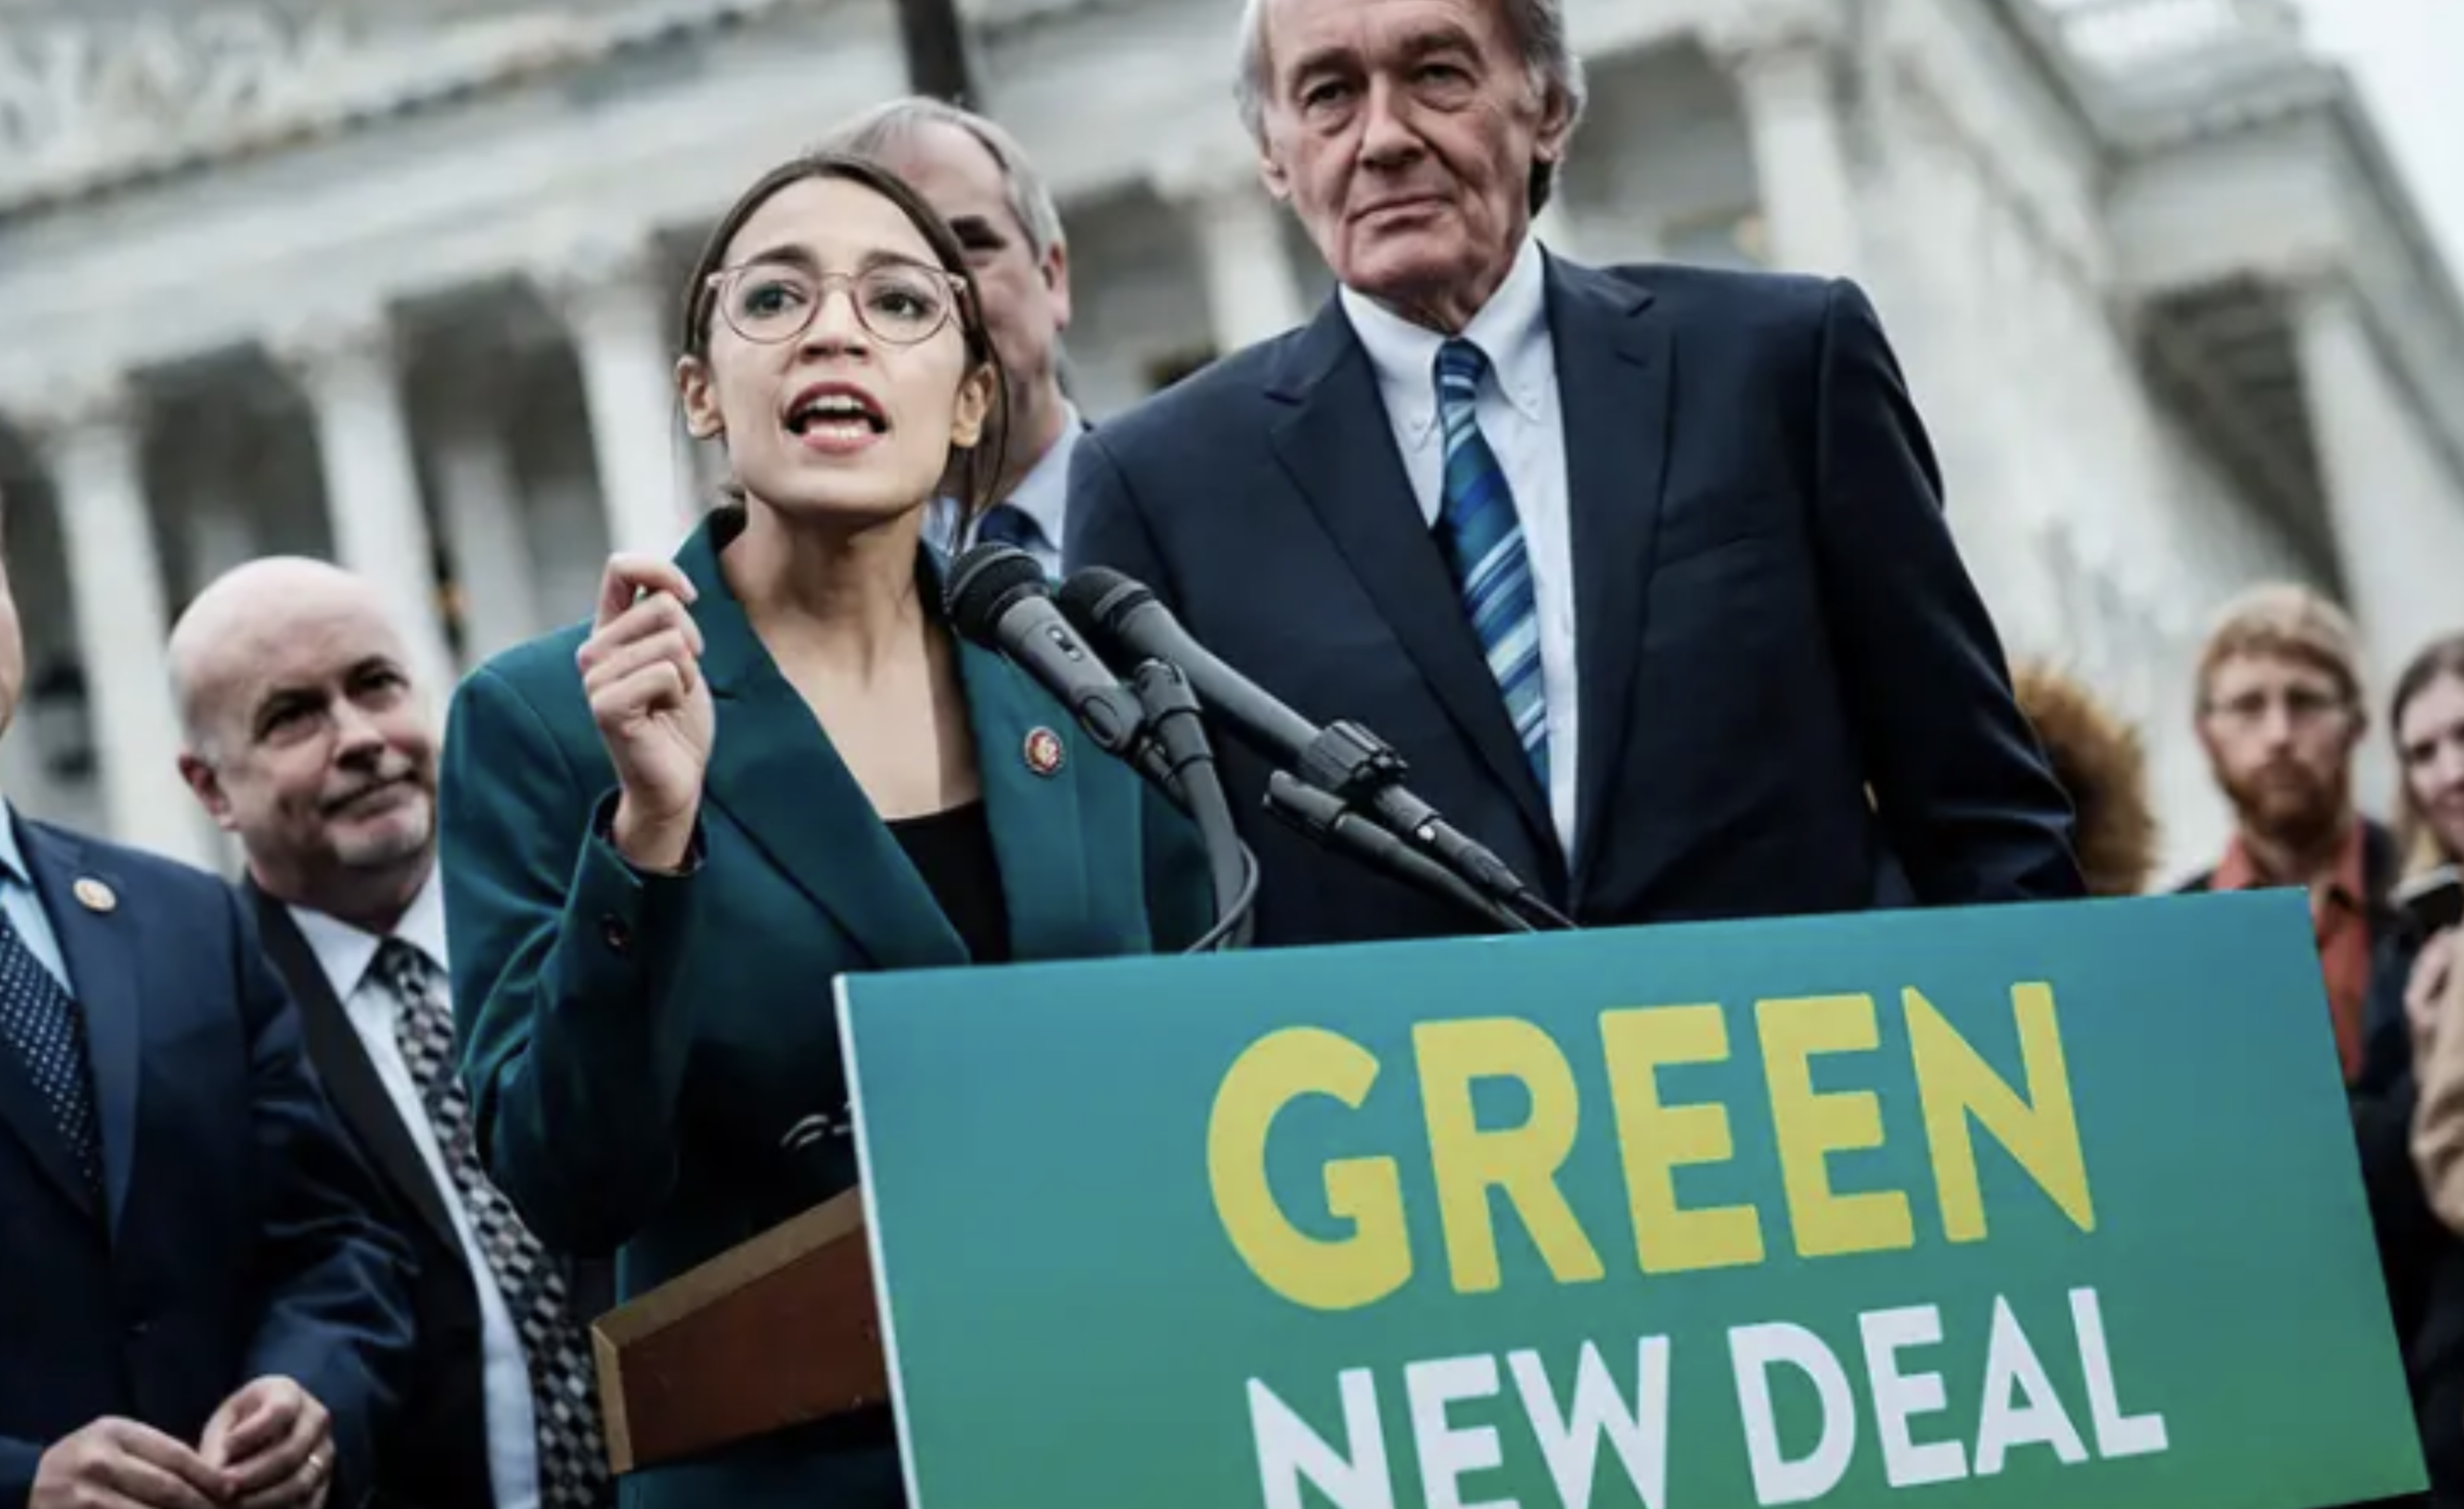 The Green New Deal - The Green New Deal is a climate proposal introduced by New York representative Alexandria Ocasio-Cortez and co-sponsored by Massachusetts Senator Edward J. Markey.